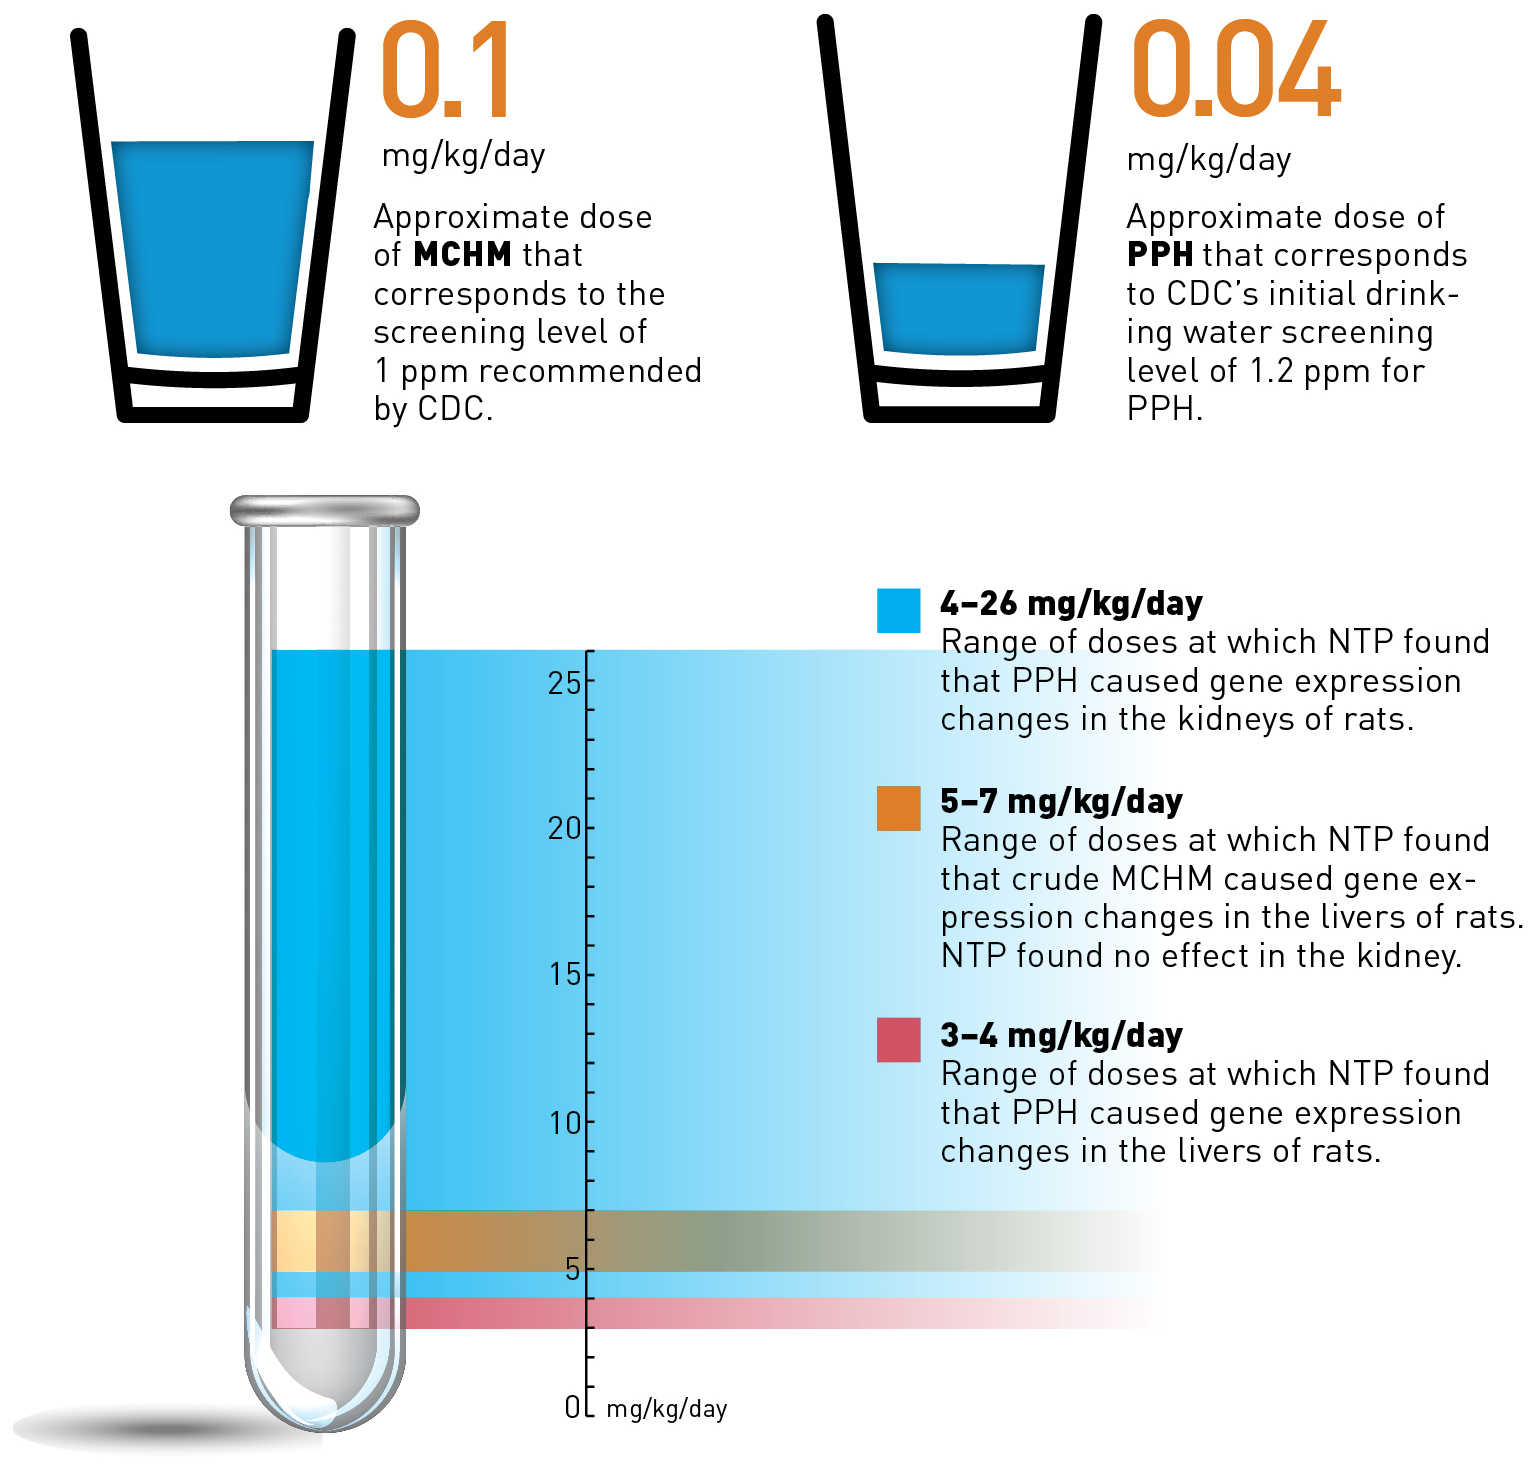 thumbnail for Drinking Water Screening Levels for the Elk River Spill